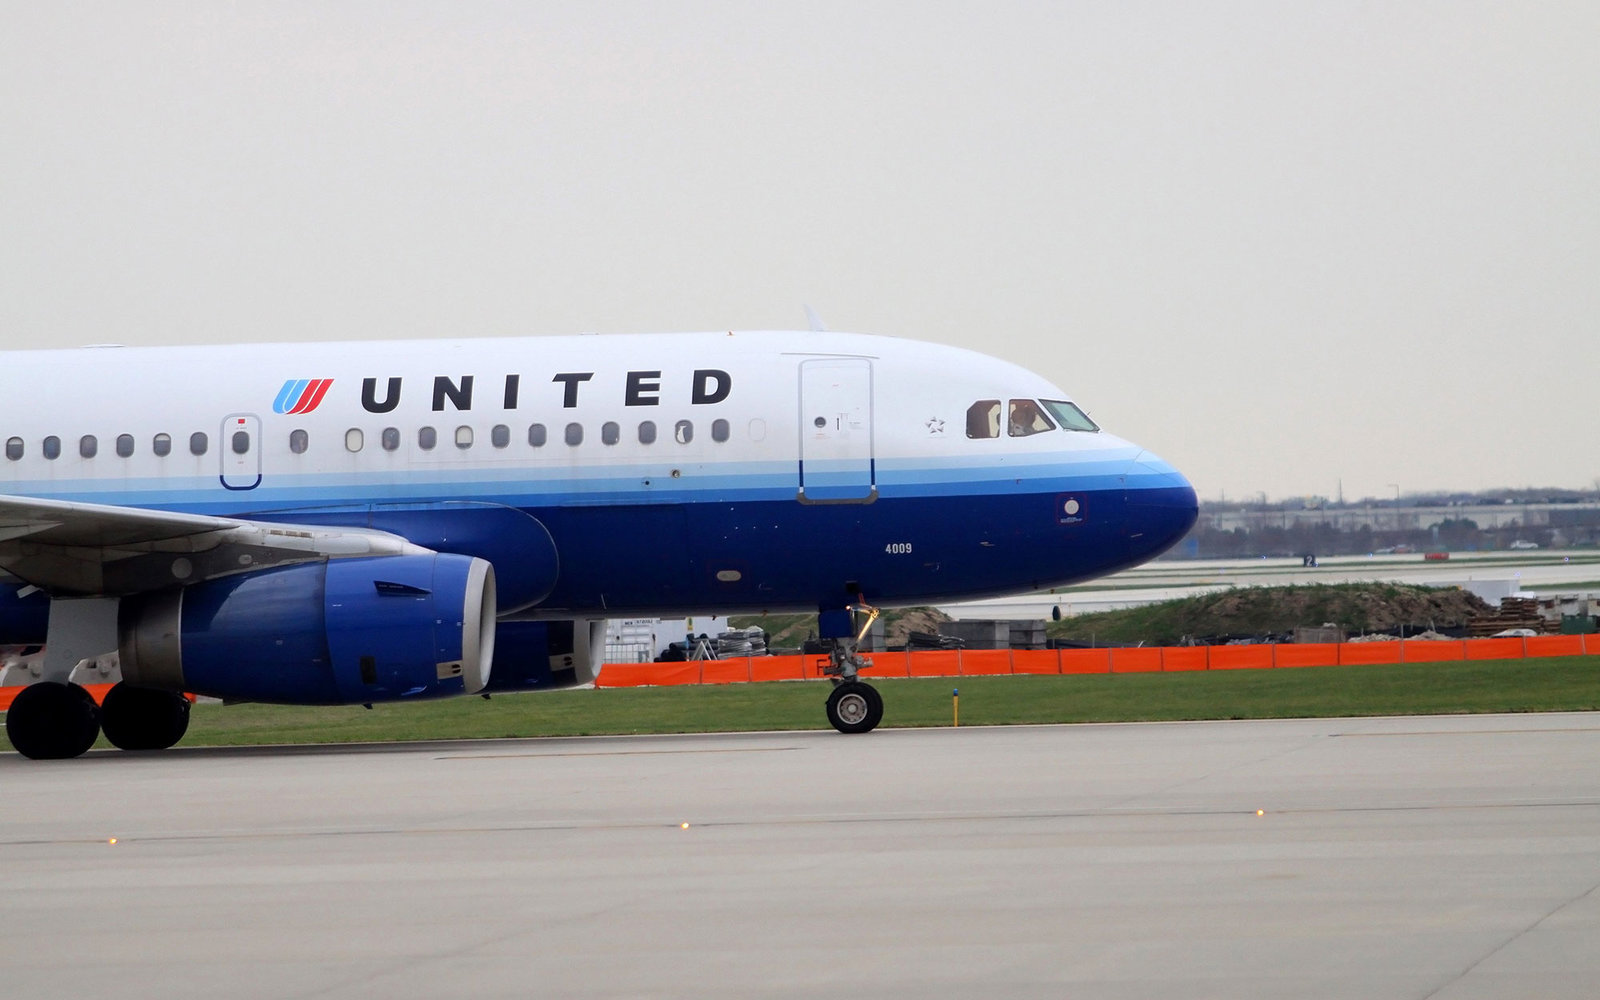 United Plane Lands Safely After Ceiling Panels Fell Off Mid-Flight